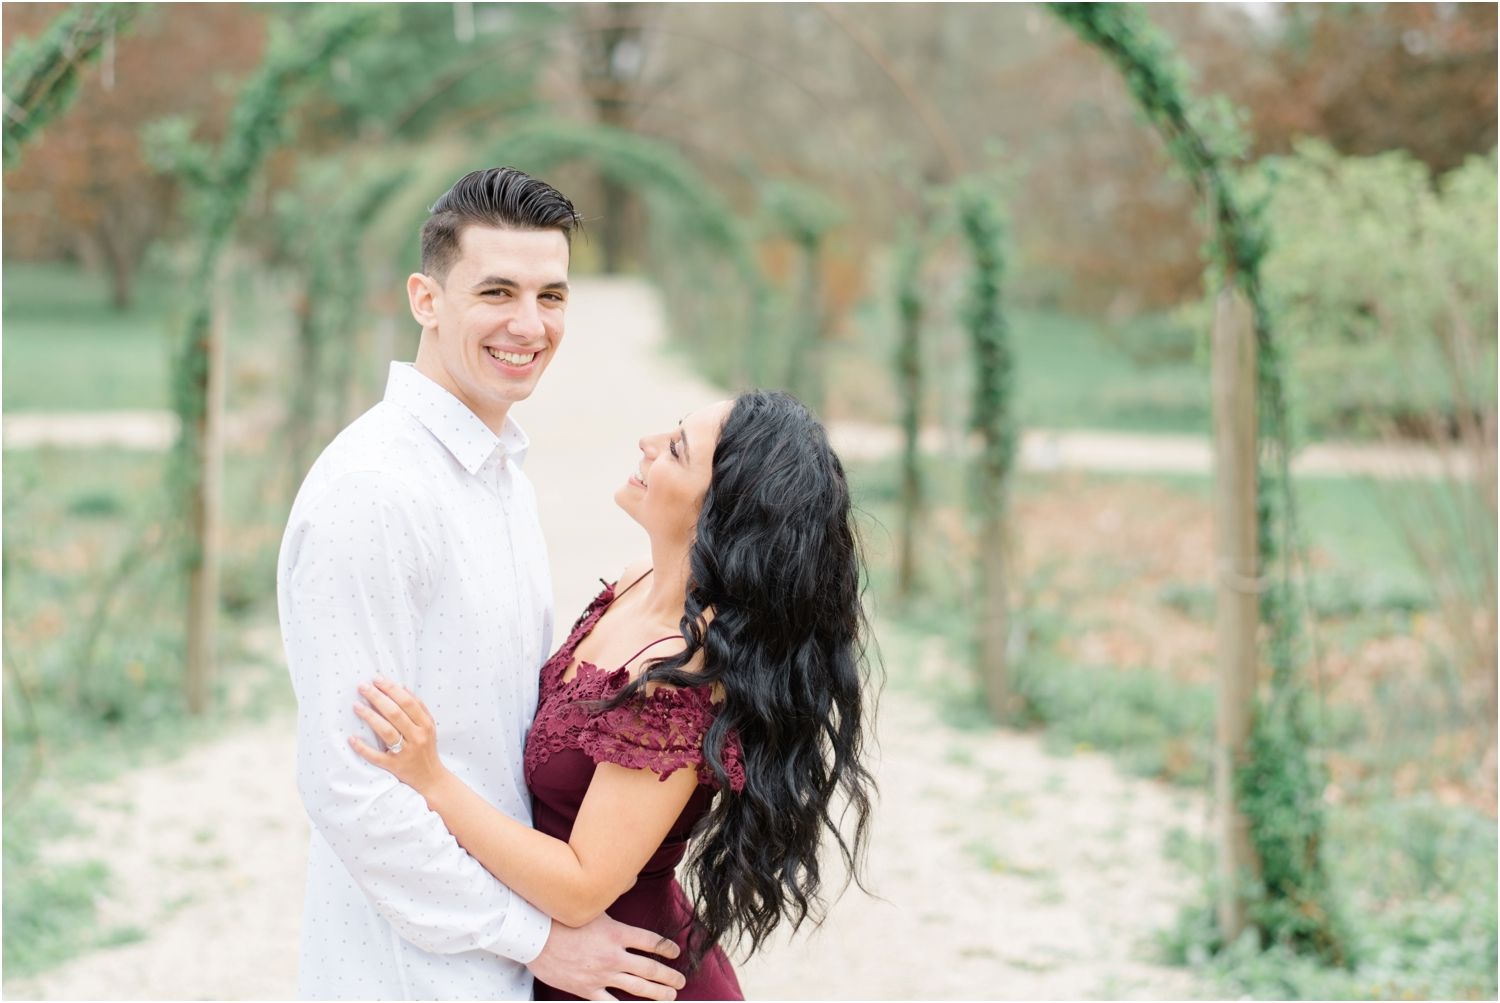 garden engagement session.jpg